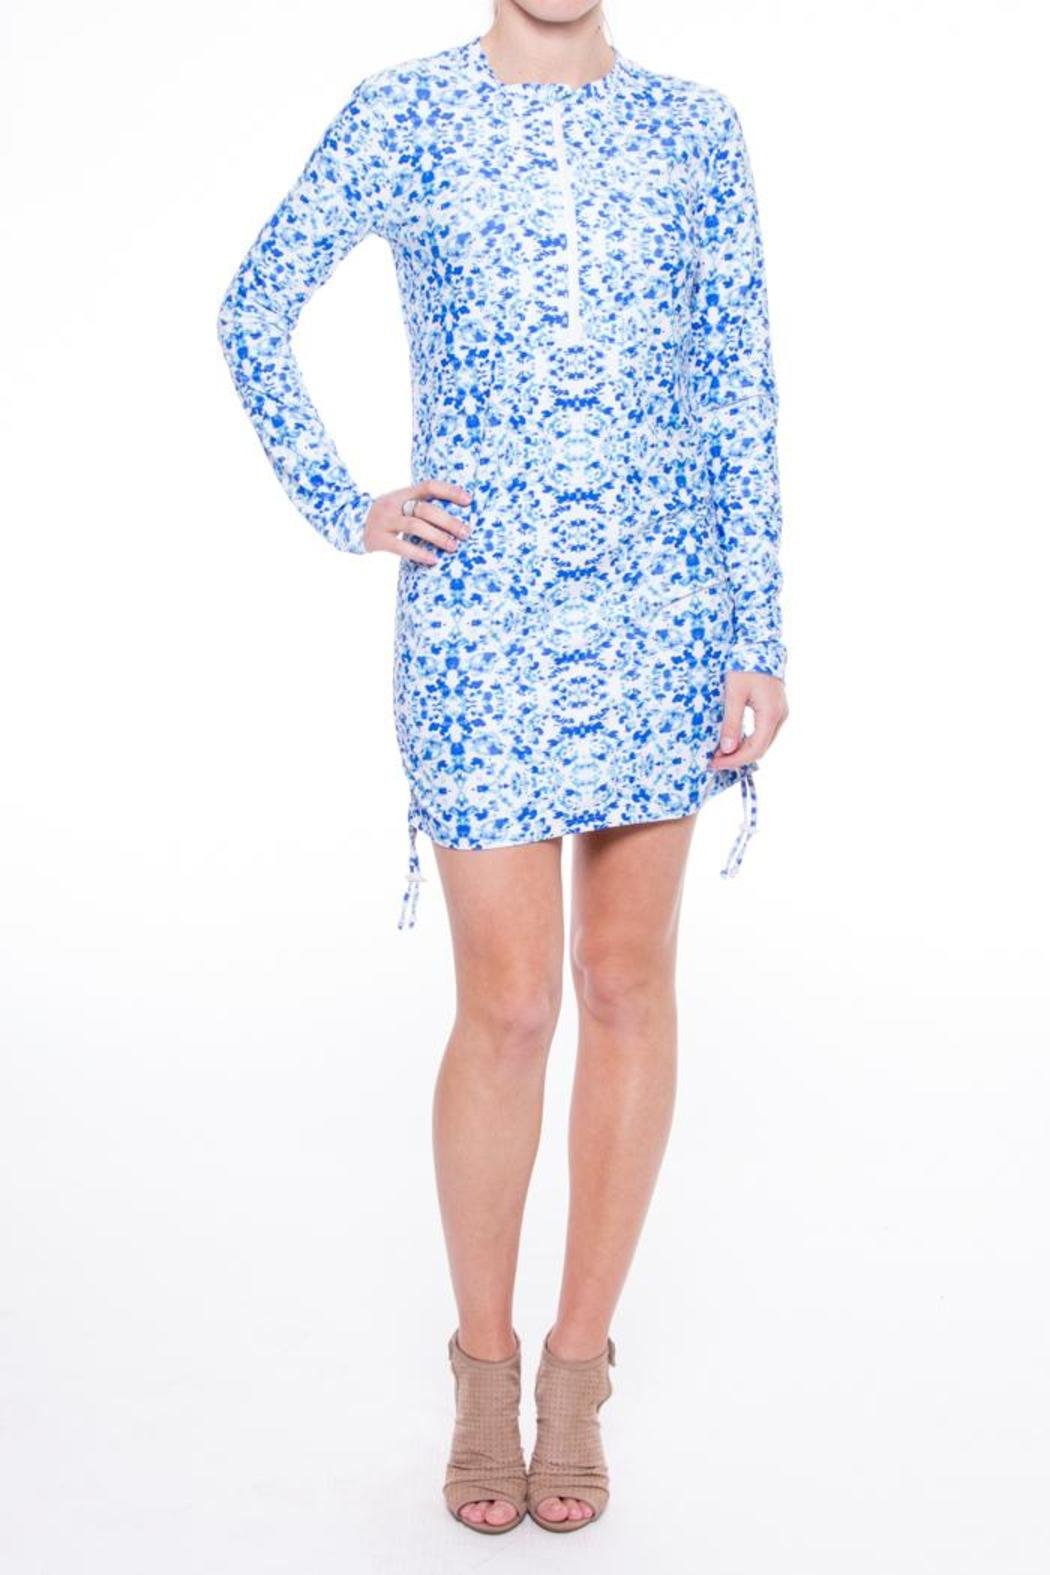 Mott 50 Sun Protective Swim Dress From Vail By Perch